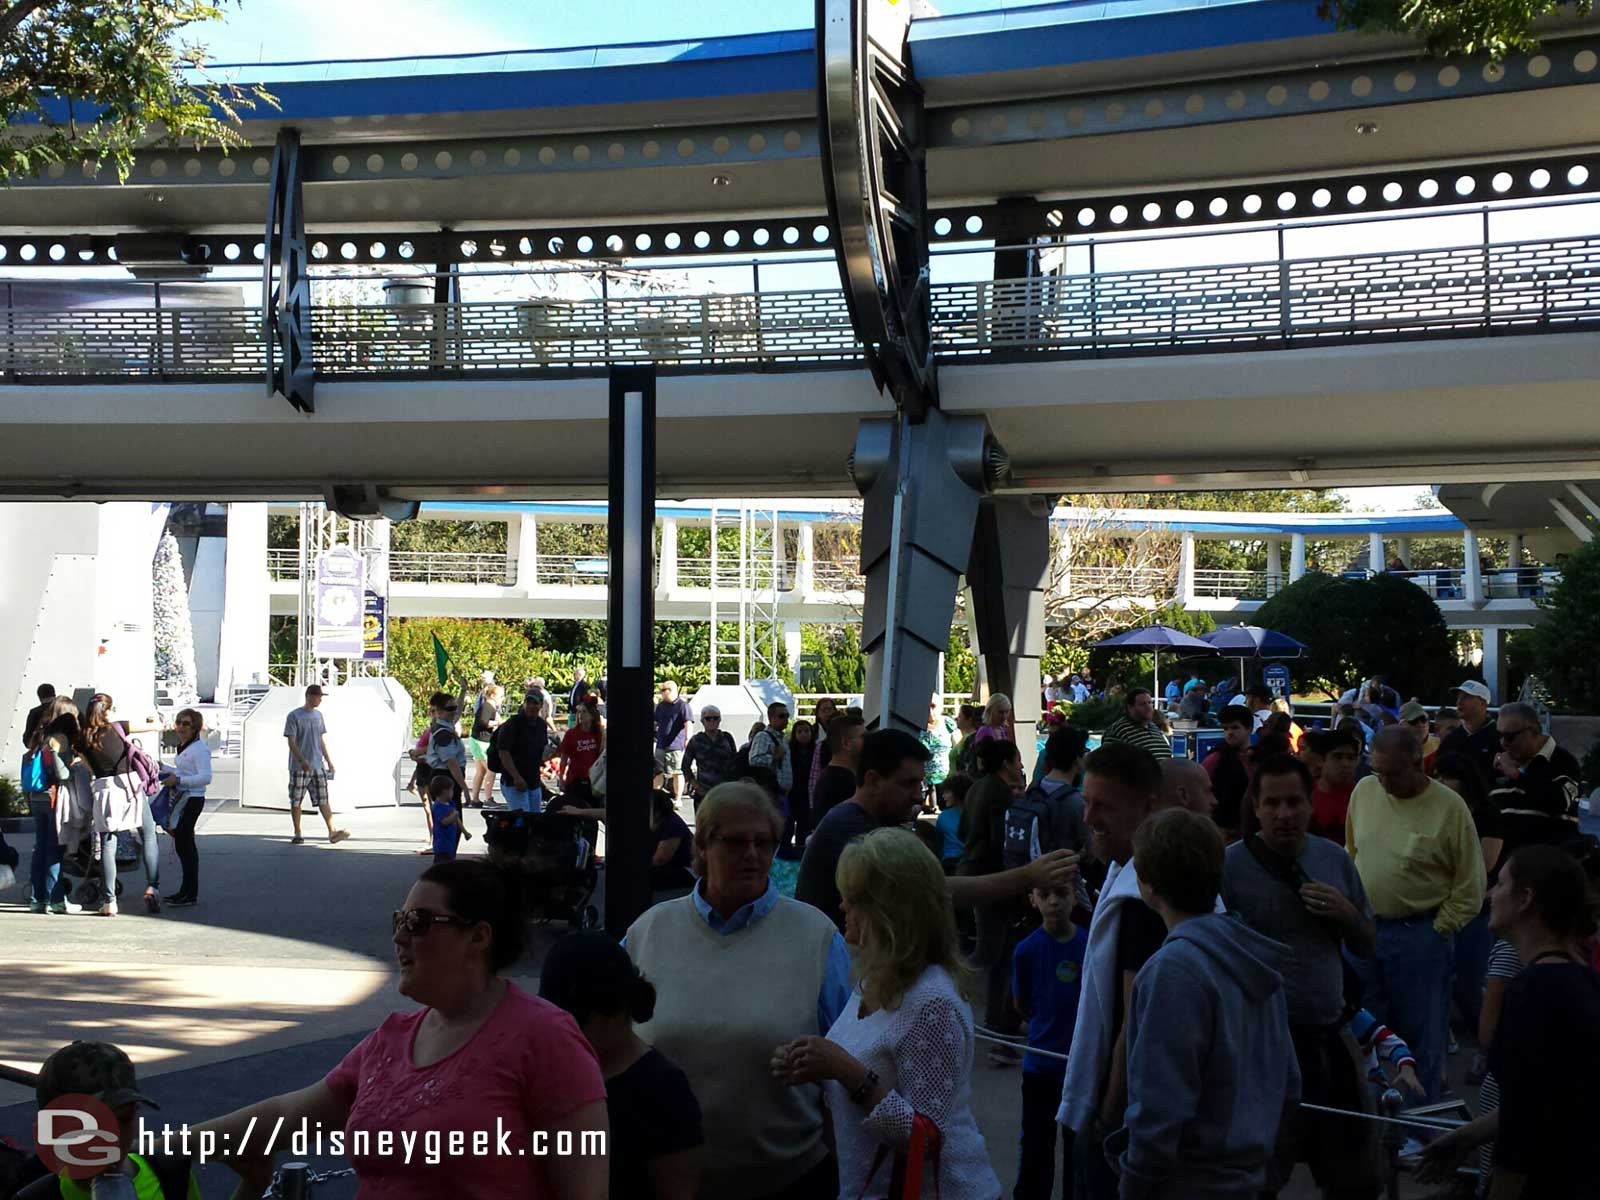 A line for the People Mover today... took about 10 minutes. The CM with the green flag is the end.